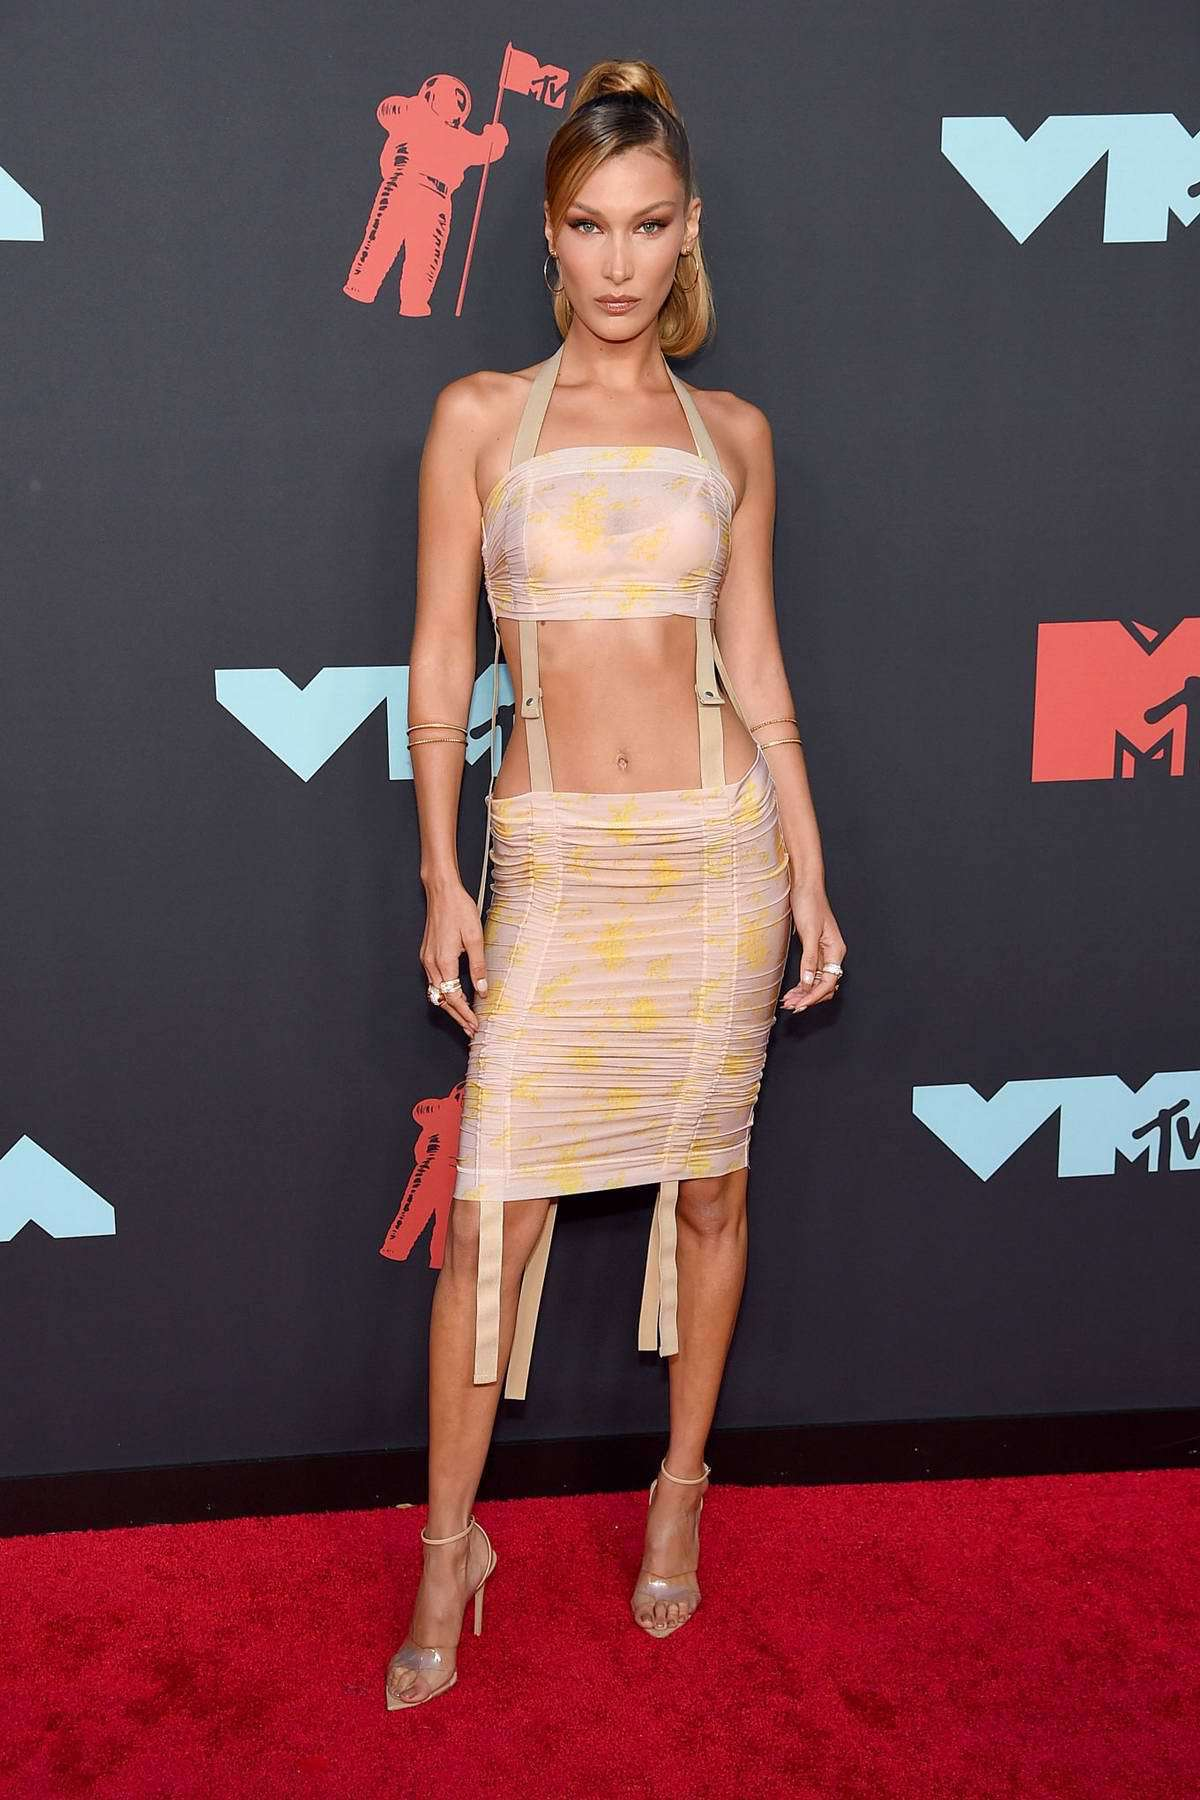 shoes nude nude top skirt two piece dress set bella hadid red carpet dress model crop tops vma